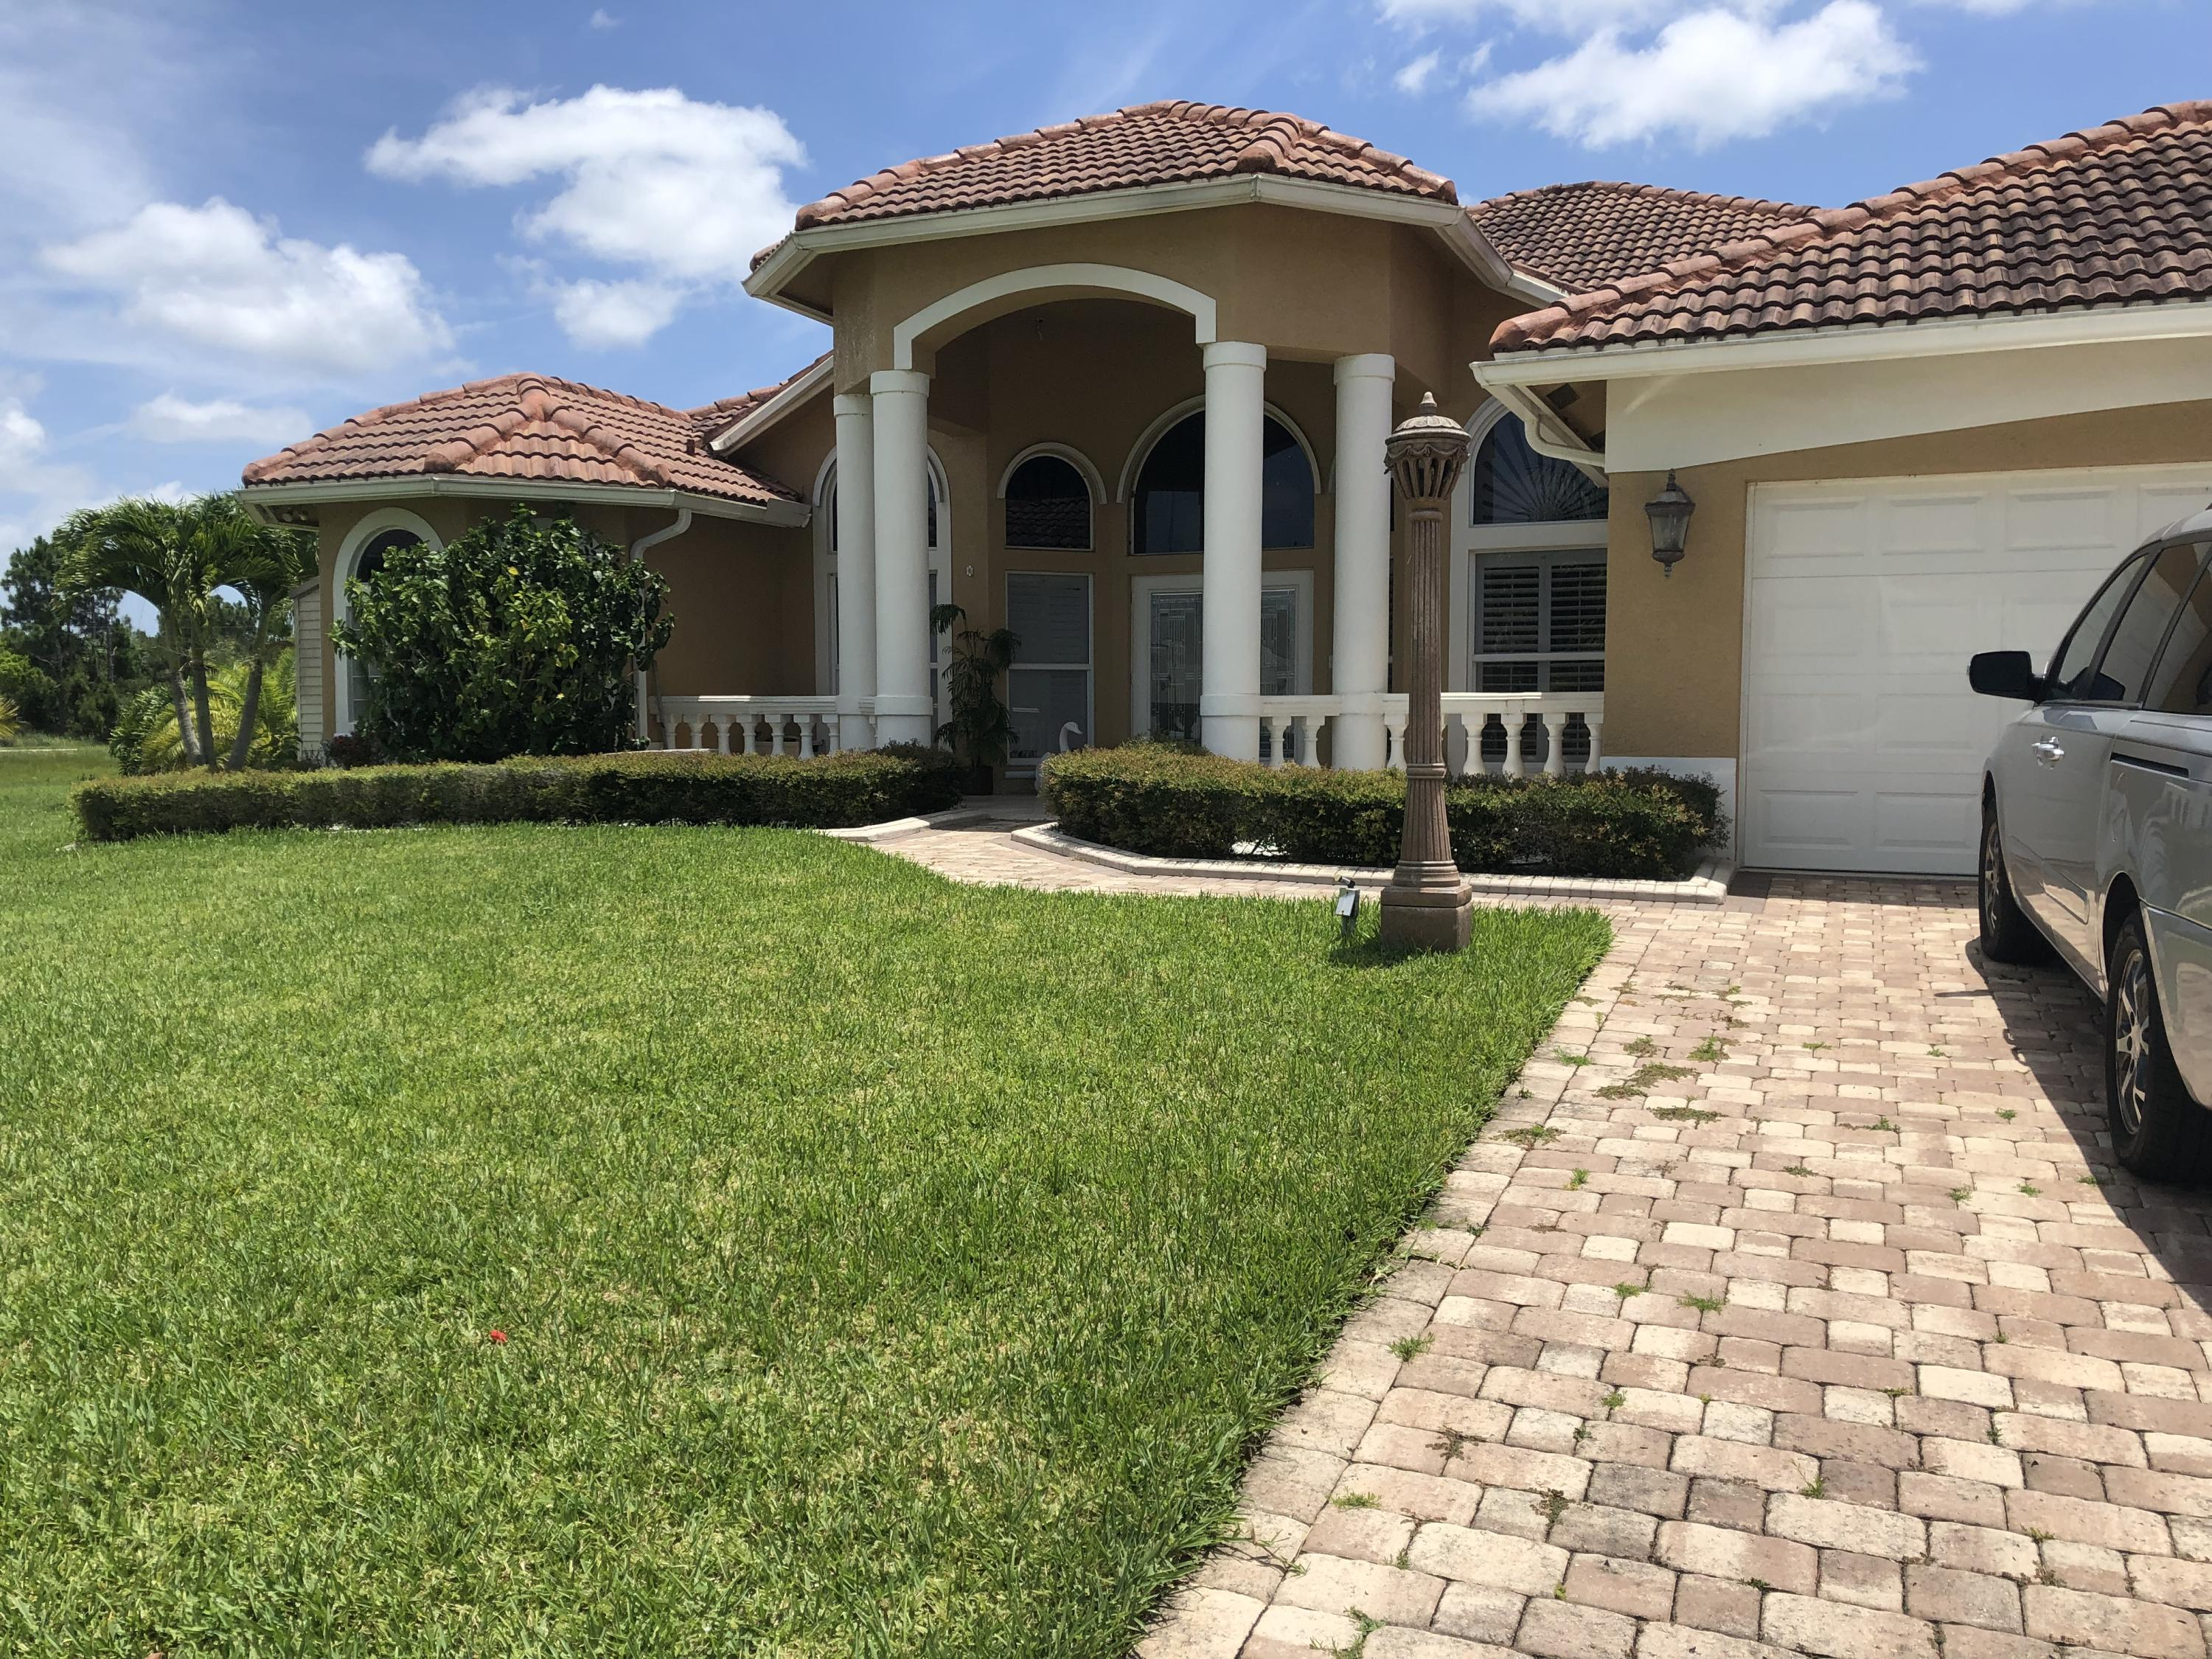 Home for sale in Torino Port Saint Lucie Florida